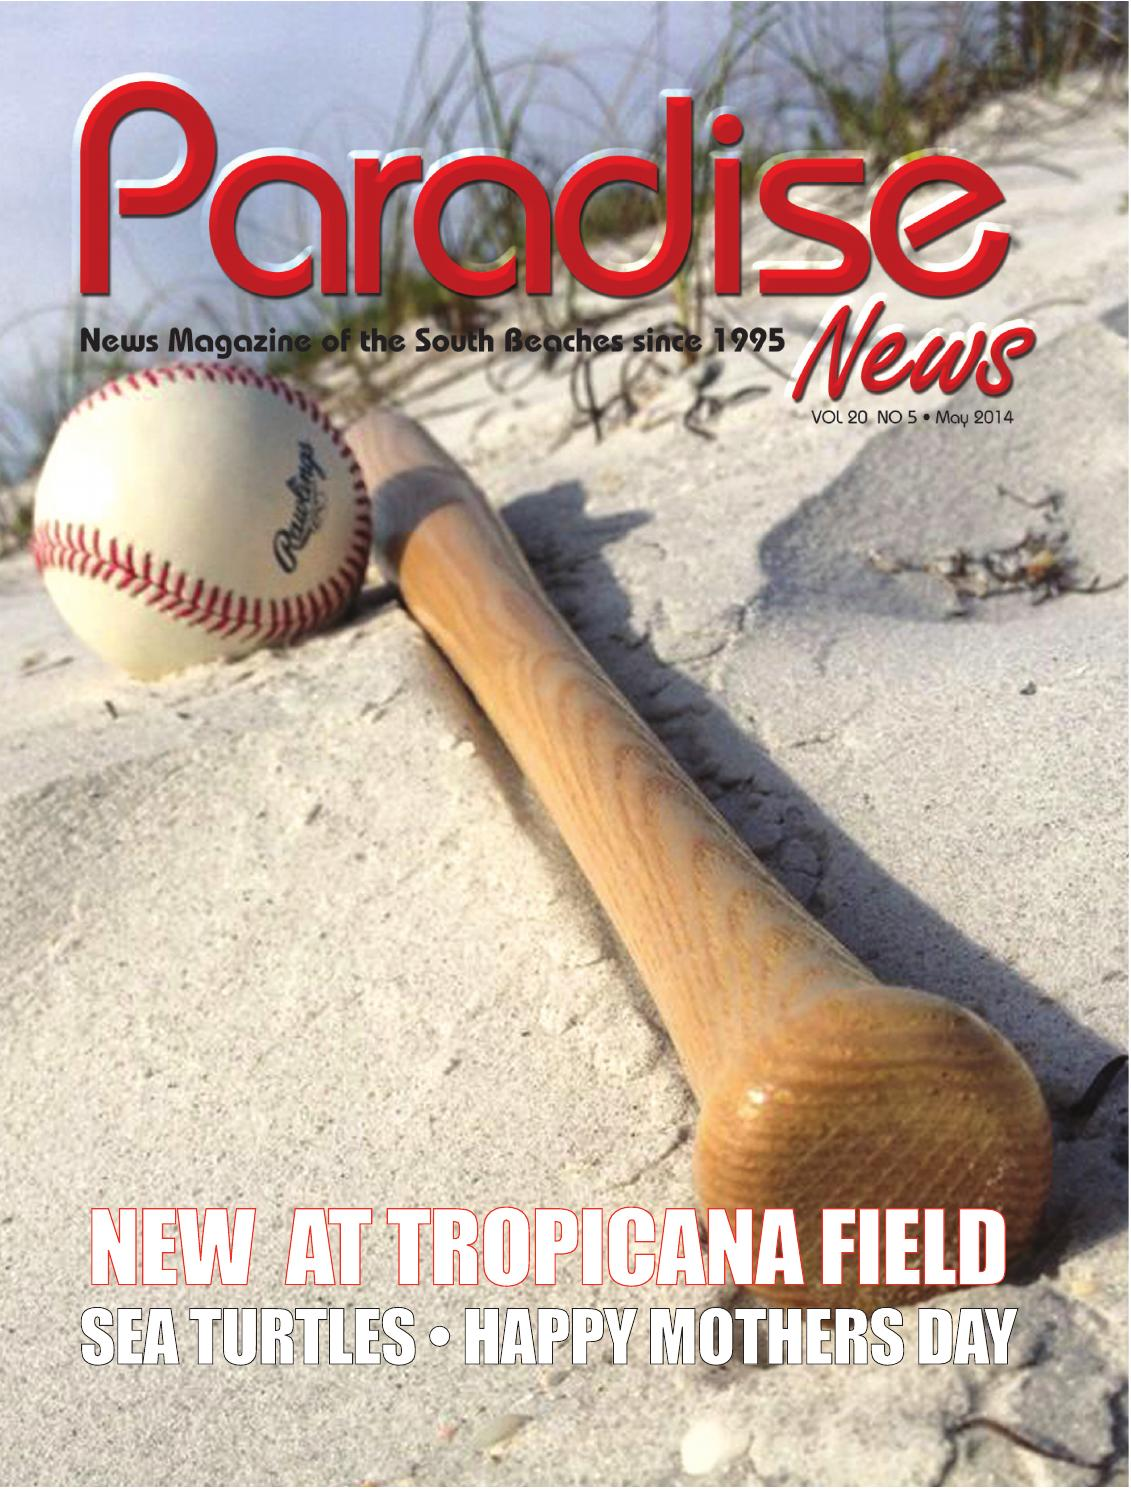 bamboo fence installation team galatea homes decorative.htm may issue of paradise news by paradisenewsfl issuu  paradise news by paradisenewsfl